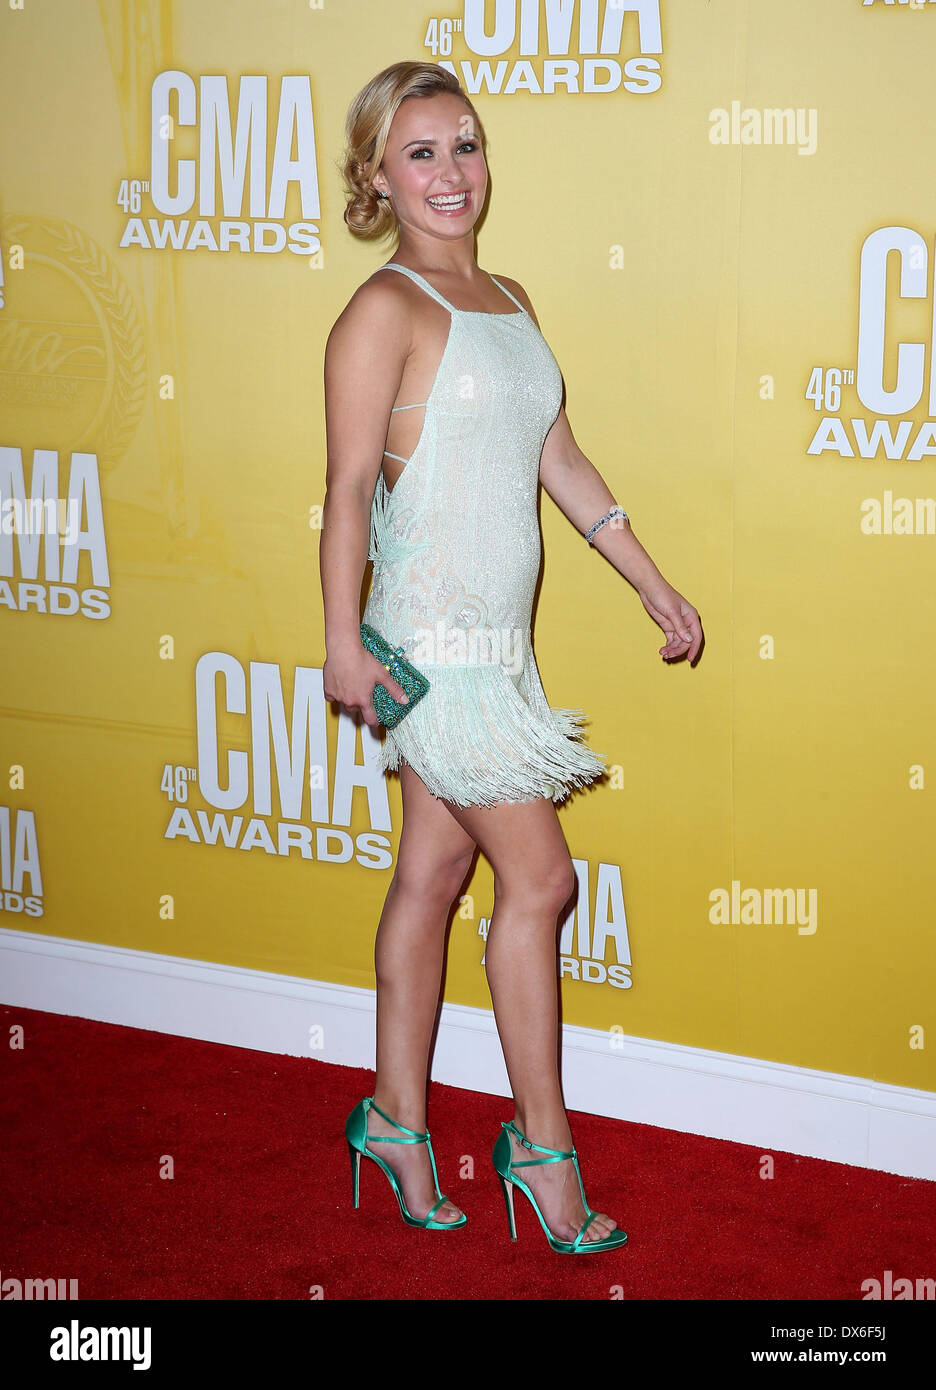 Hayden Panettiere 46th Annual Cma Awards Inside Bridgestone Arena In